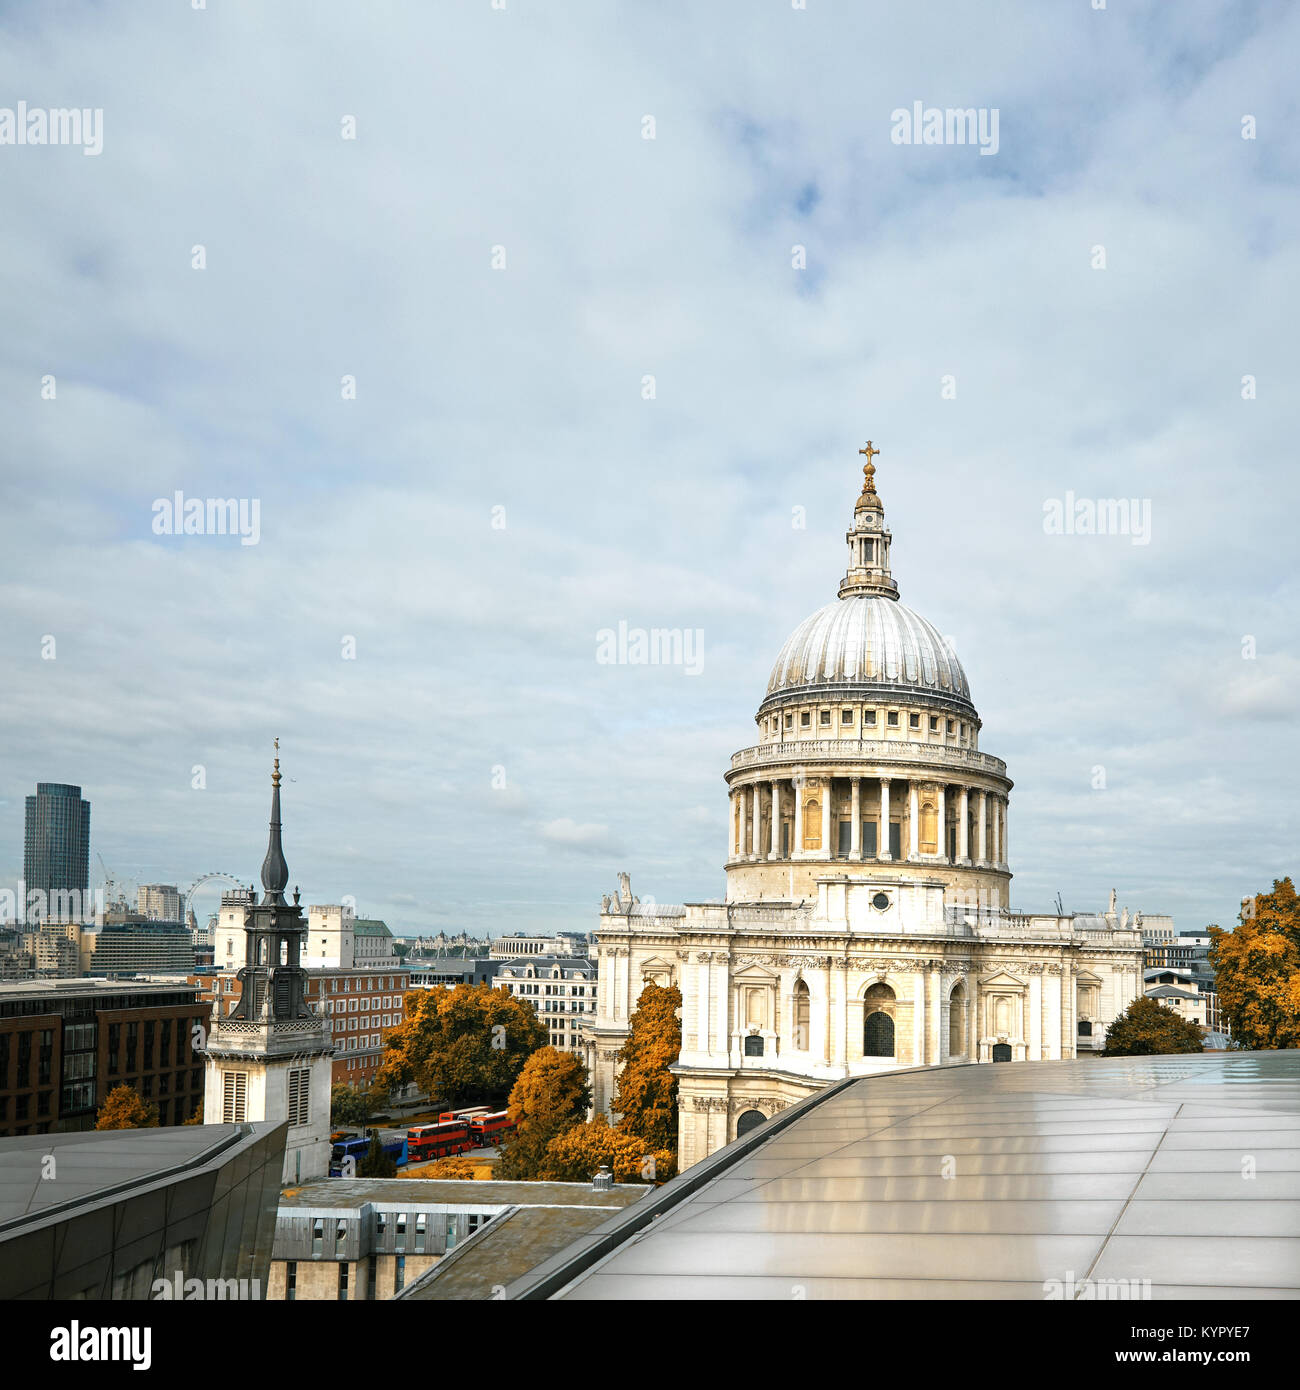 London cityscape with St Paul's Cathedral in Autumn. Panoramic toned image, square composition. - Stock Image